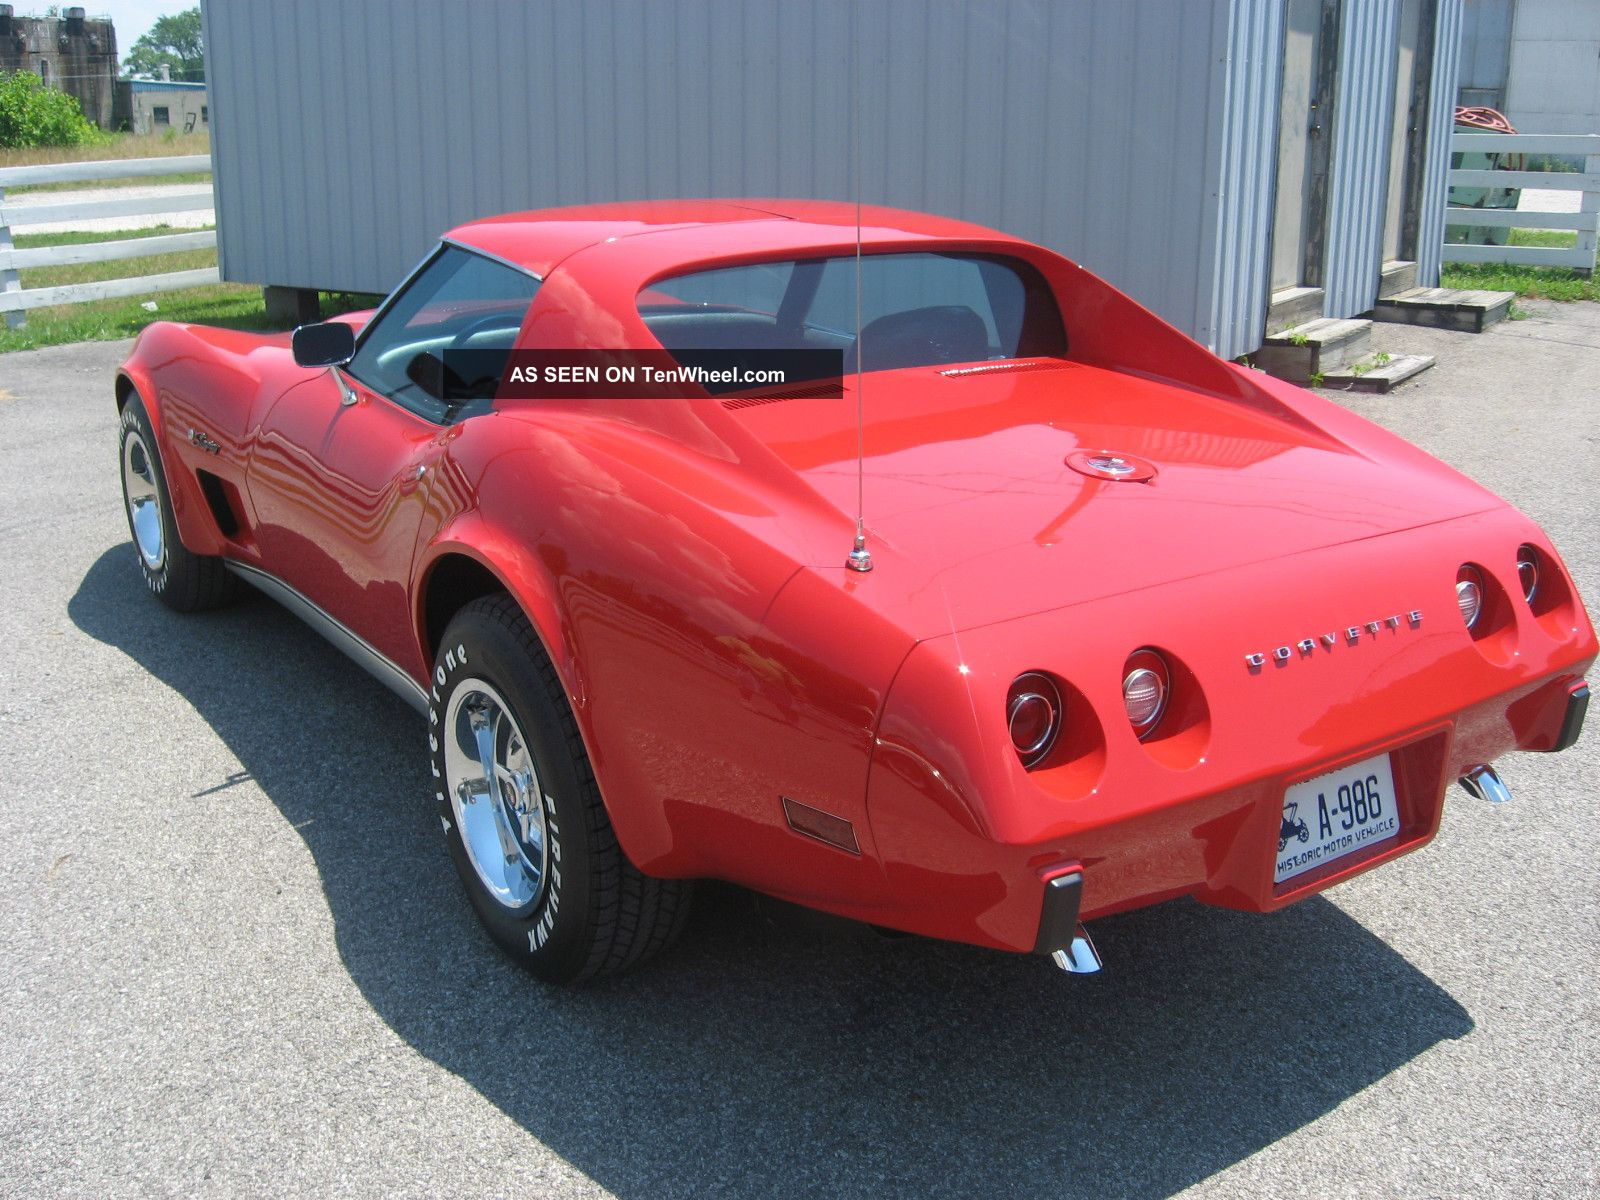 1975 chevrolet corvette stingray coupe 2 door 5 7l corvette photo 5. Cars Review. Best American Auto & Cars Review